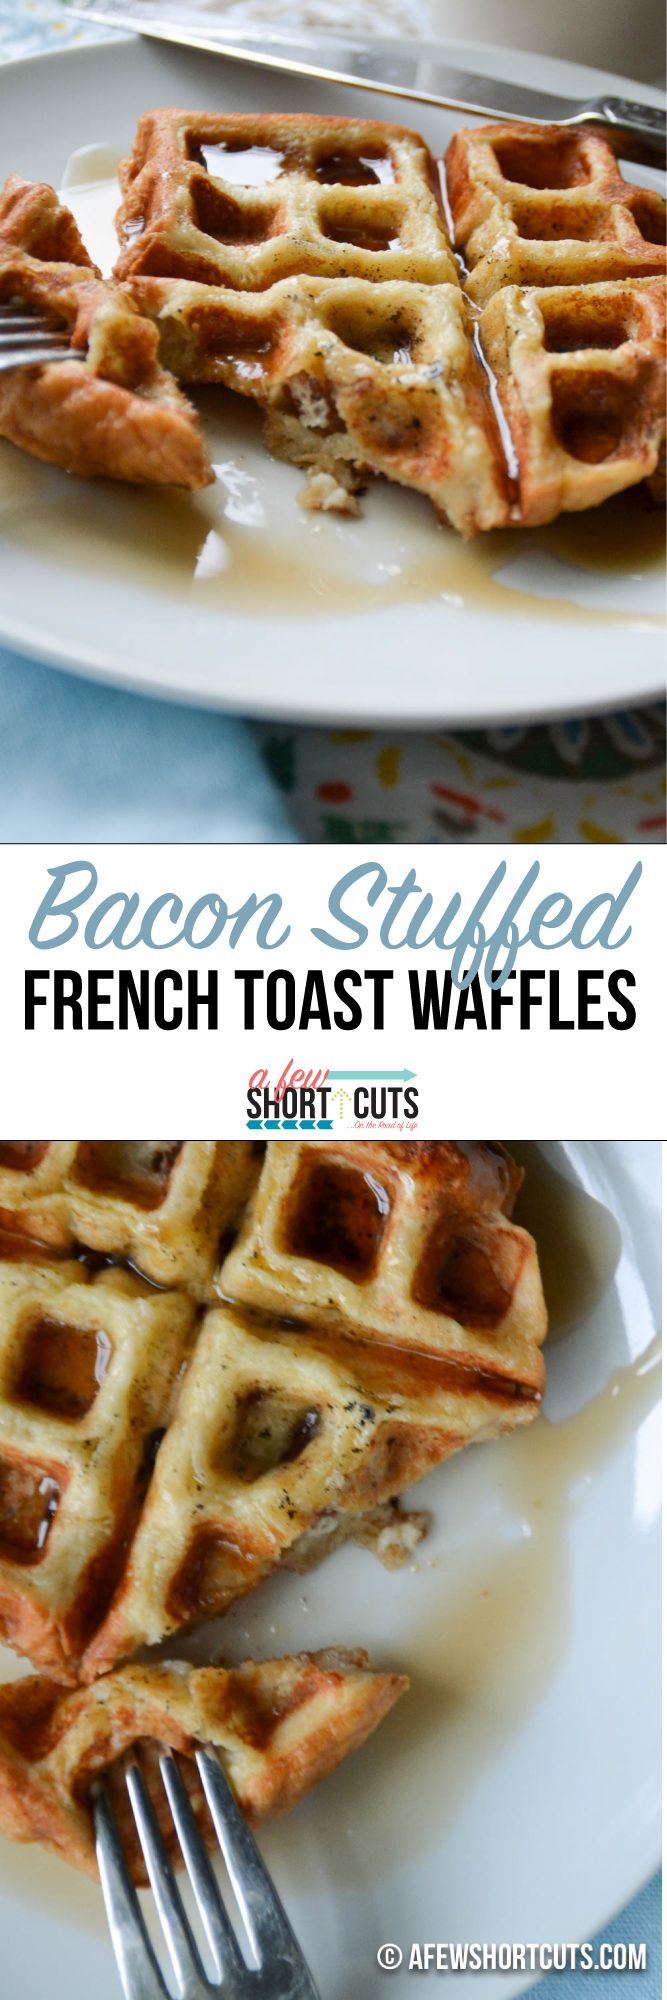 A delicious fast morning breakfast recipe. You must try this Bacon Stuffed French Toast Waffles Recipe.  #raiseyourmitt #familymealsmonth #ad